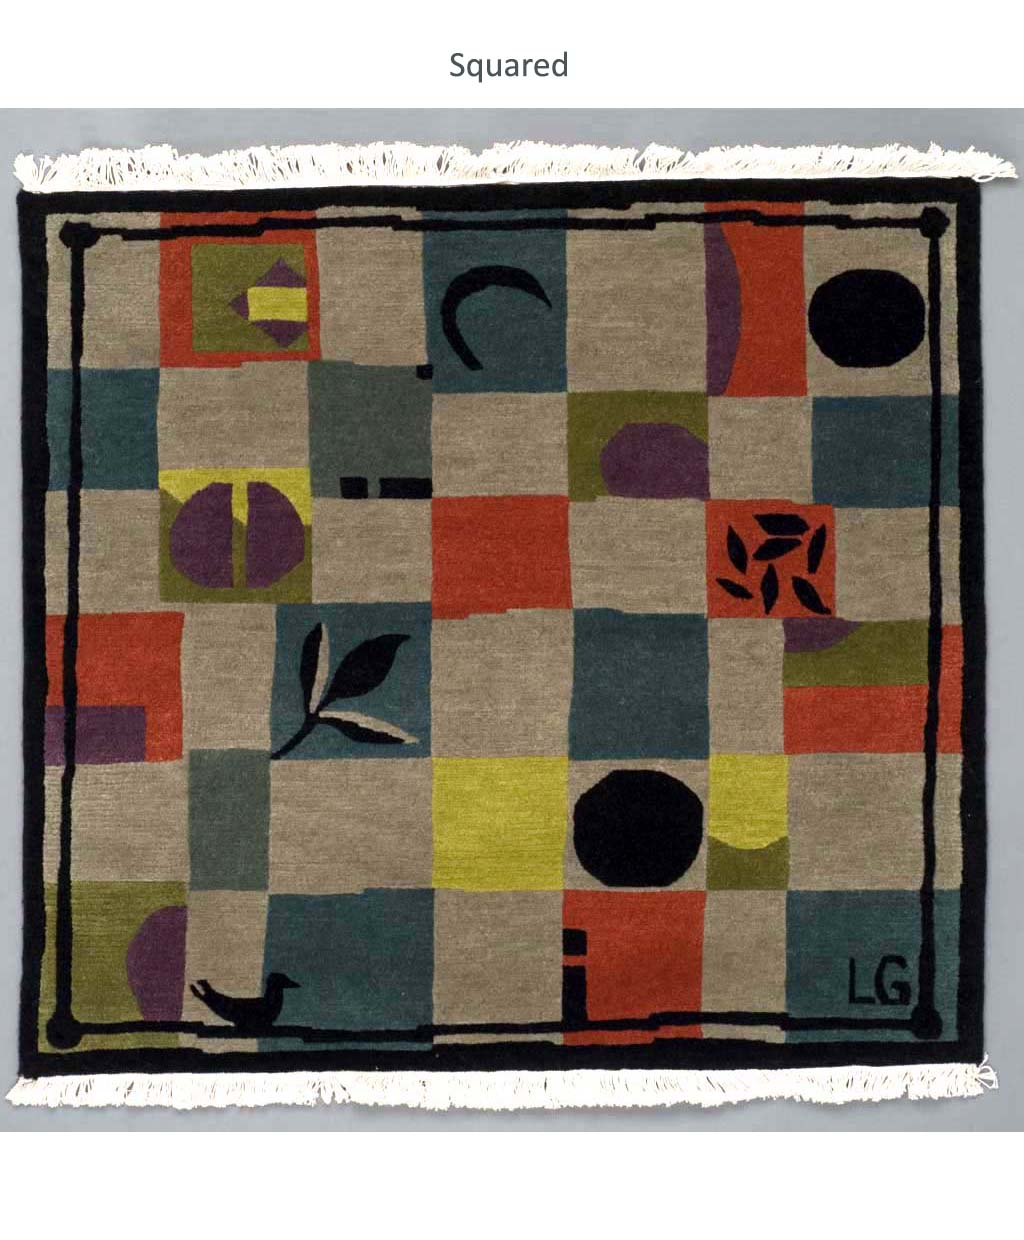 R14_Square Rug_1024_bright10_Contrast25_canvas_title.jpg